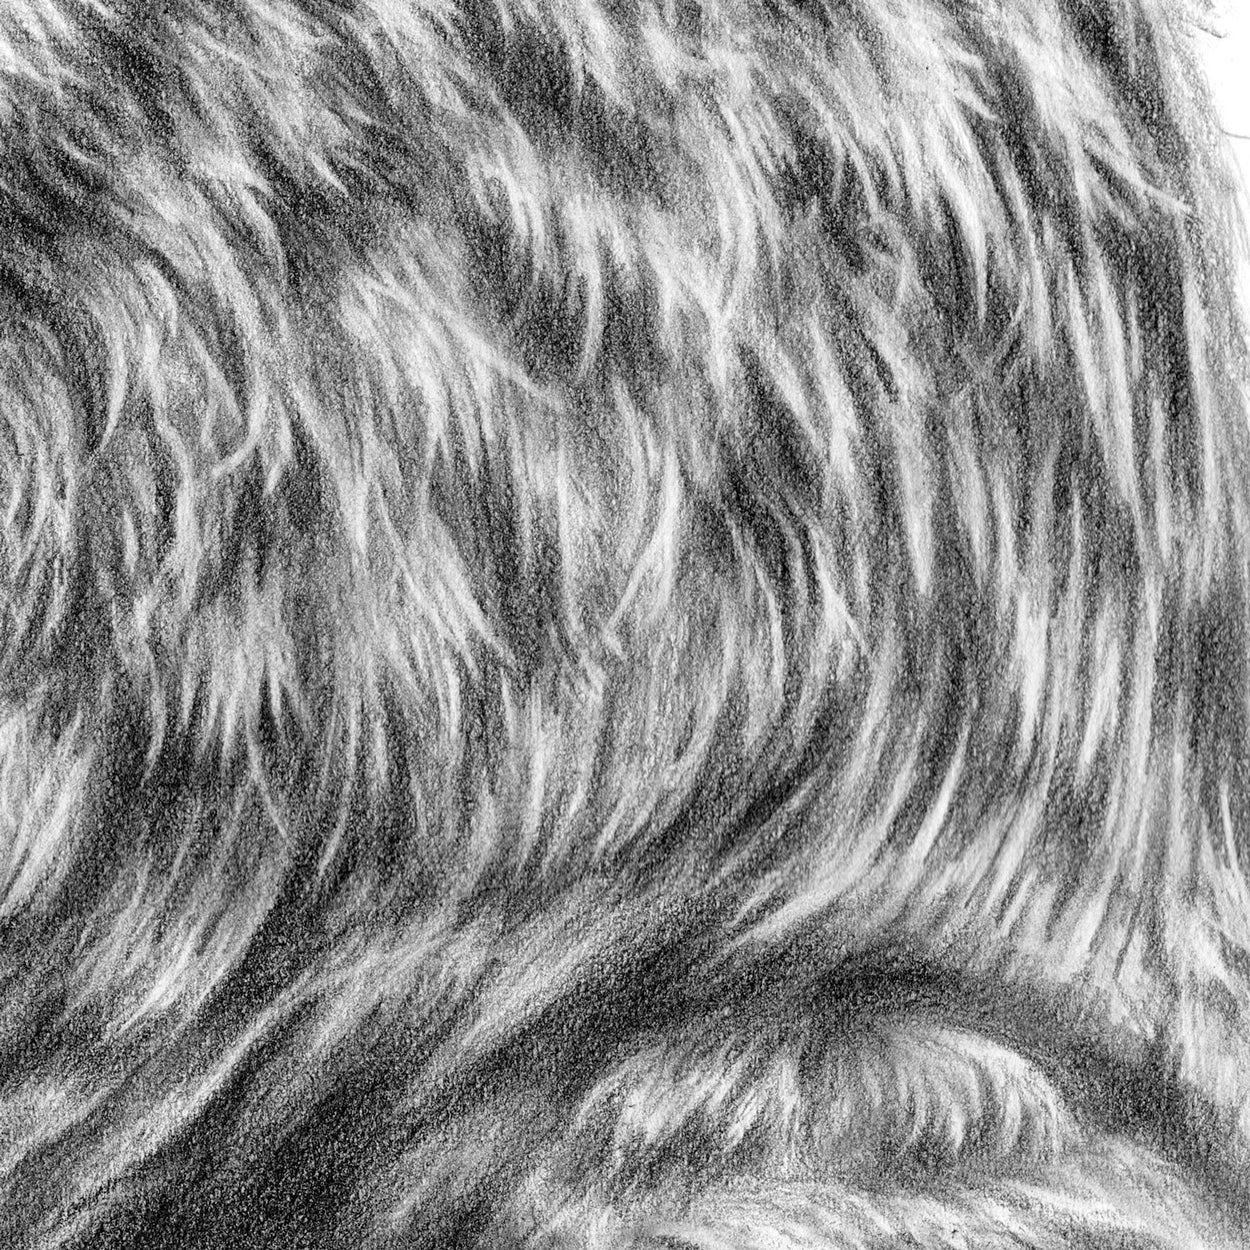 Kestrel Drawing Close-up 3 - The Thriving Wild